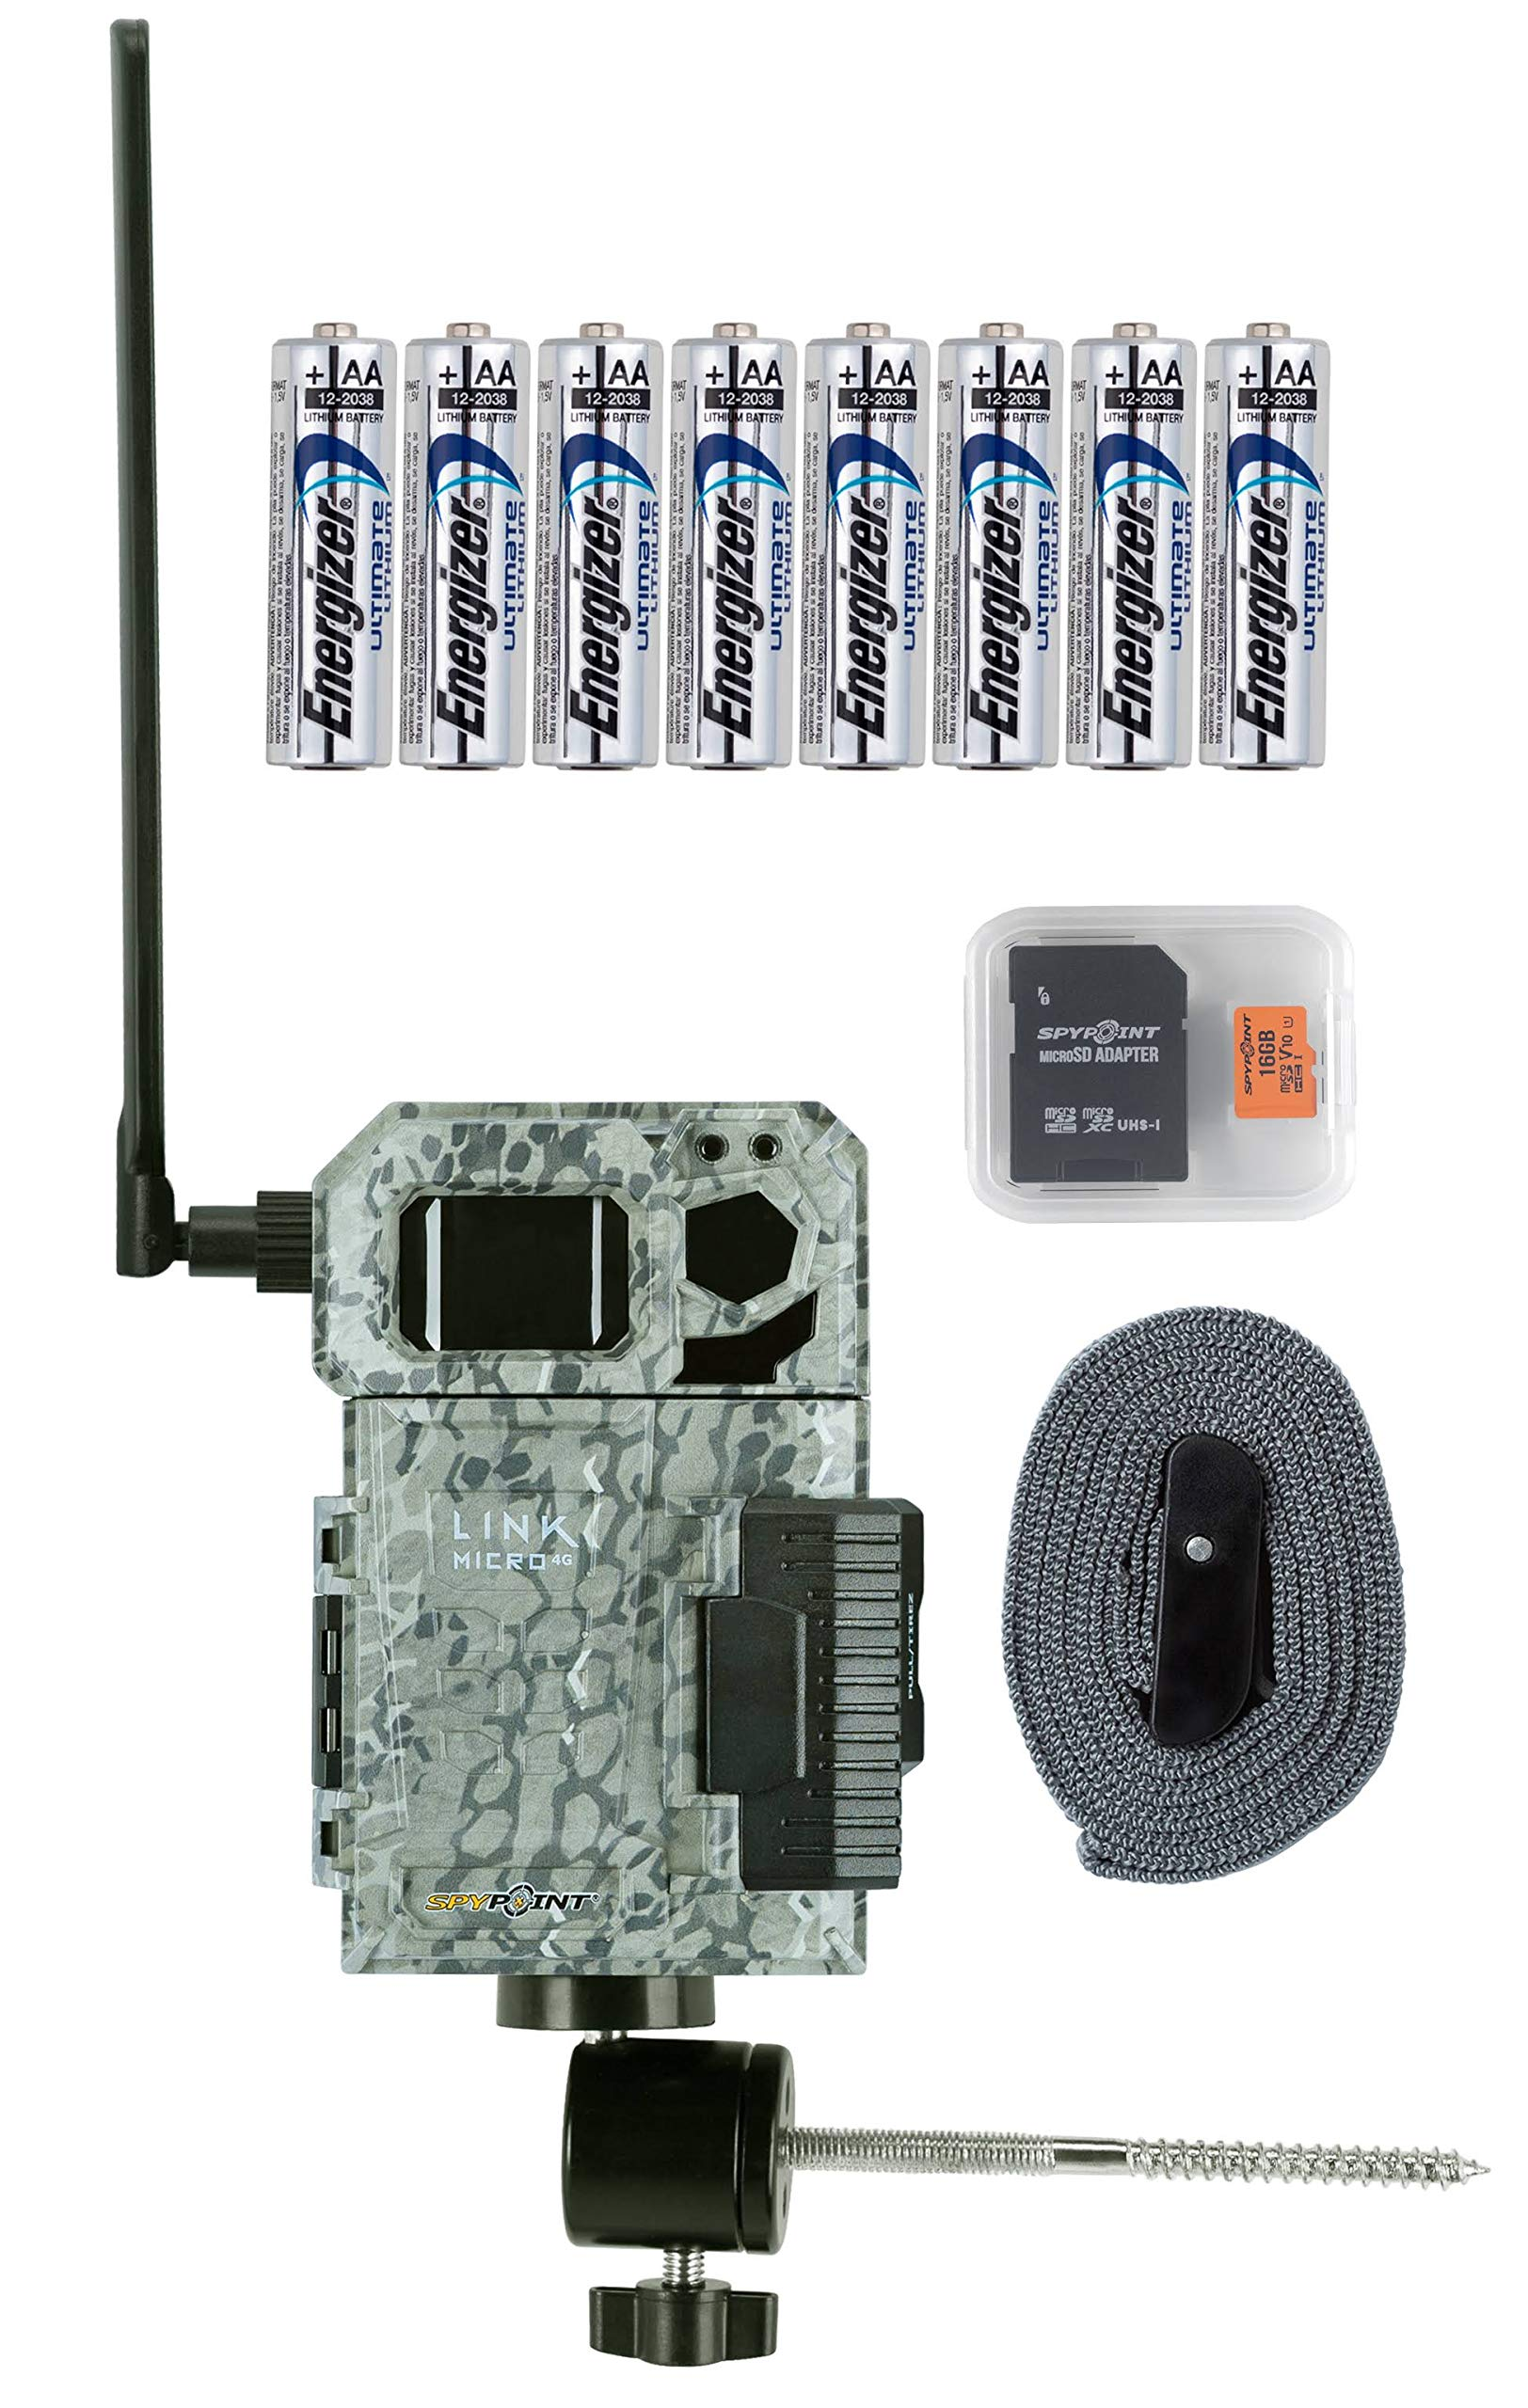 Spypoint Link Micro 4G Cellular Trail Camera with Batteries, Micro SD Card, and Mount (Verizon)